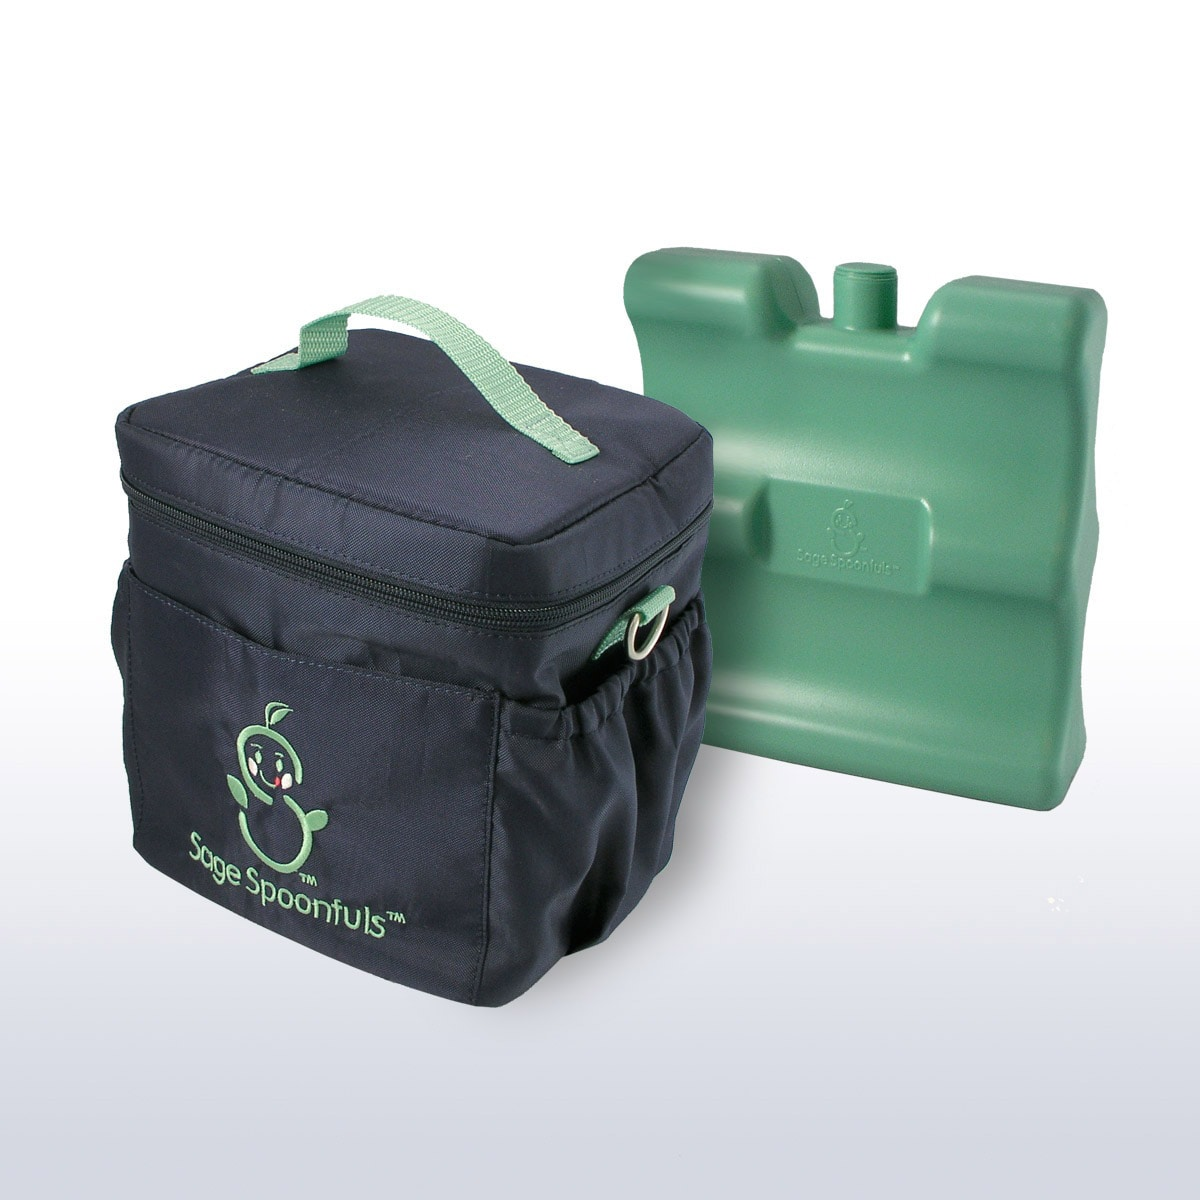 Sage Spoonfuls On-the-Go Green and Navy Cooler with Freezer Pack